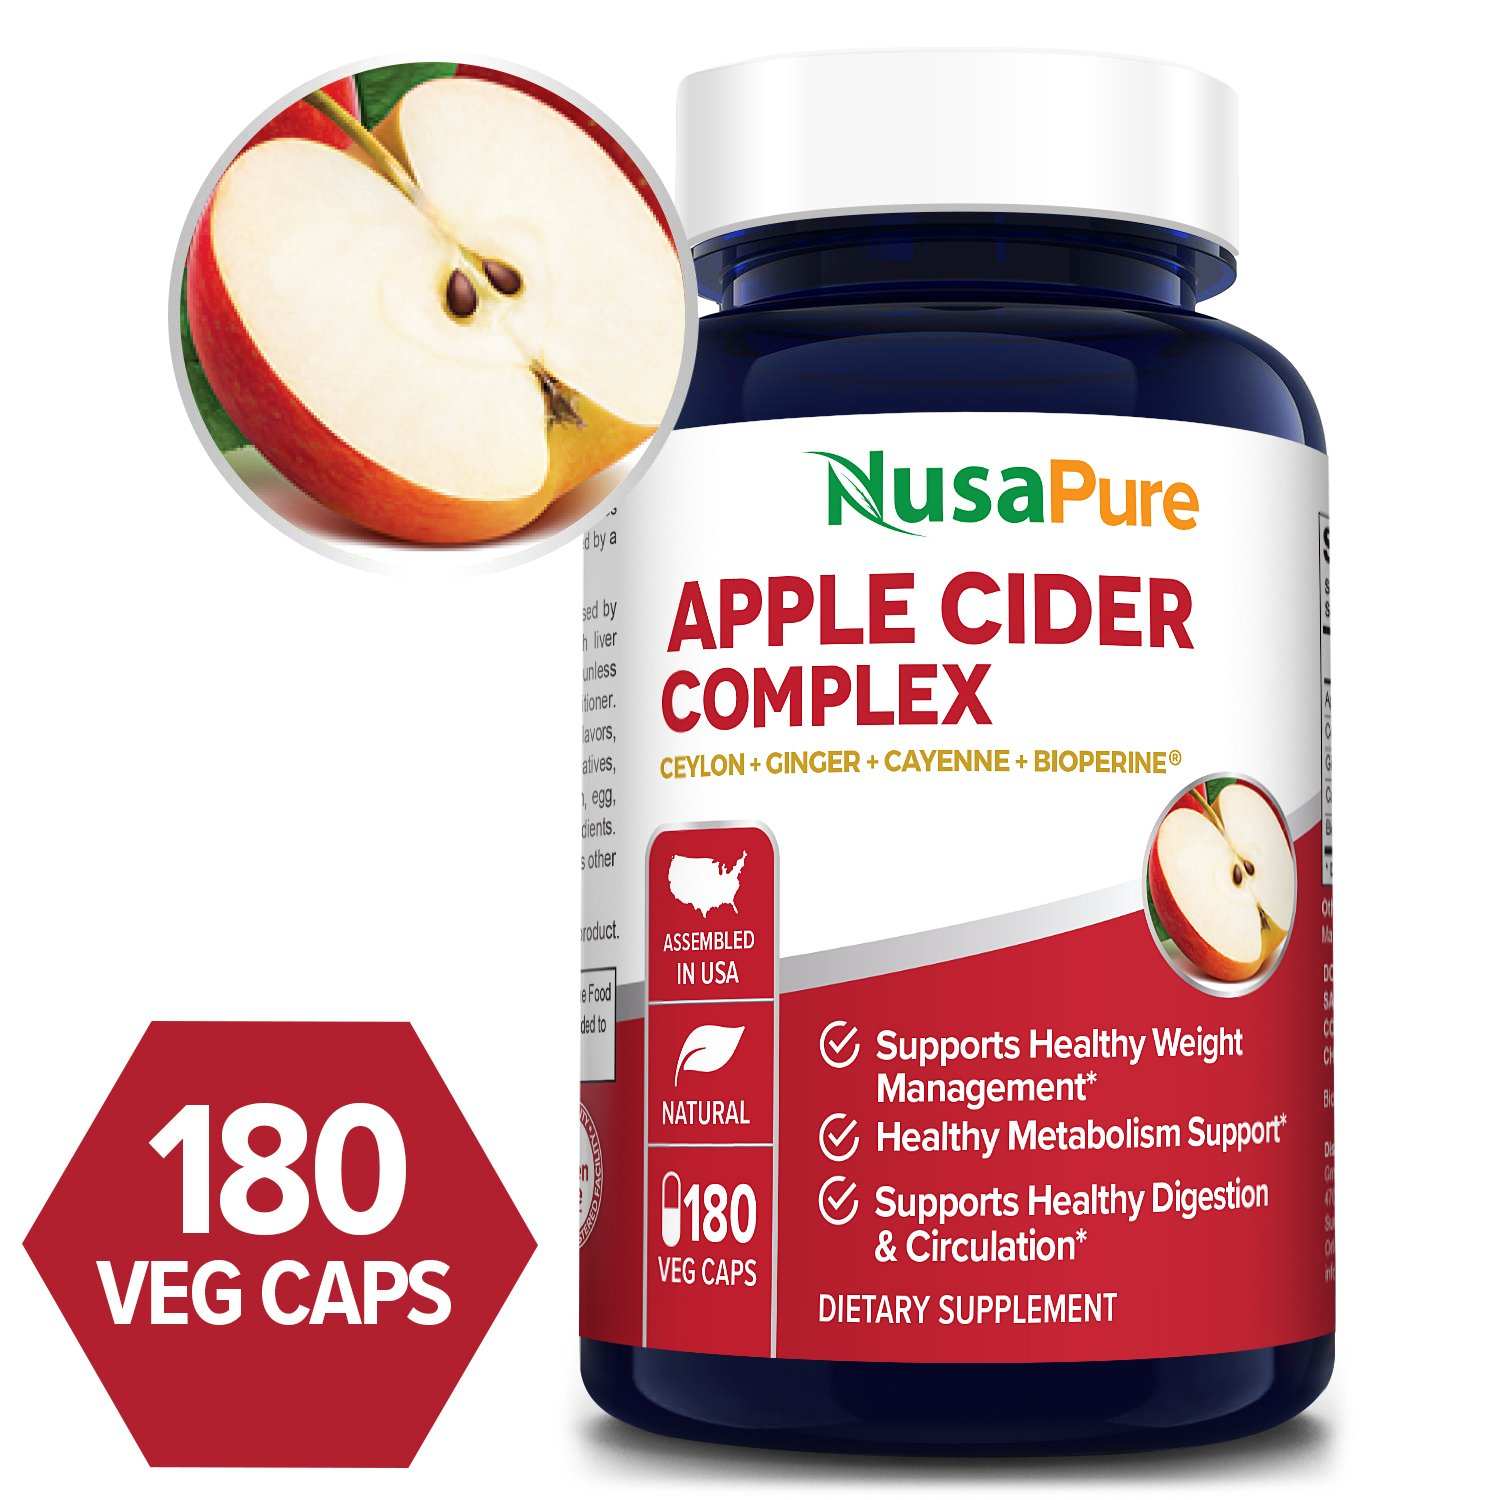 Apple Cider complex with Bioperine and organic apple cider vinegar powder - 180 Veg Caps (Vegetarian, Non-GMO & Gluten-free)